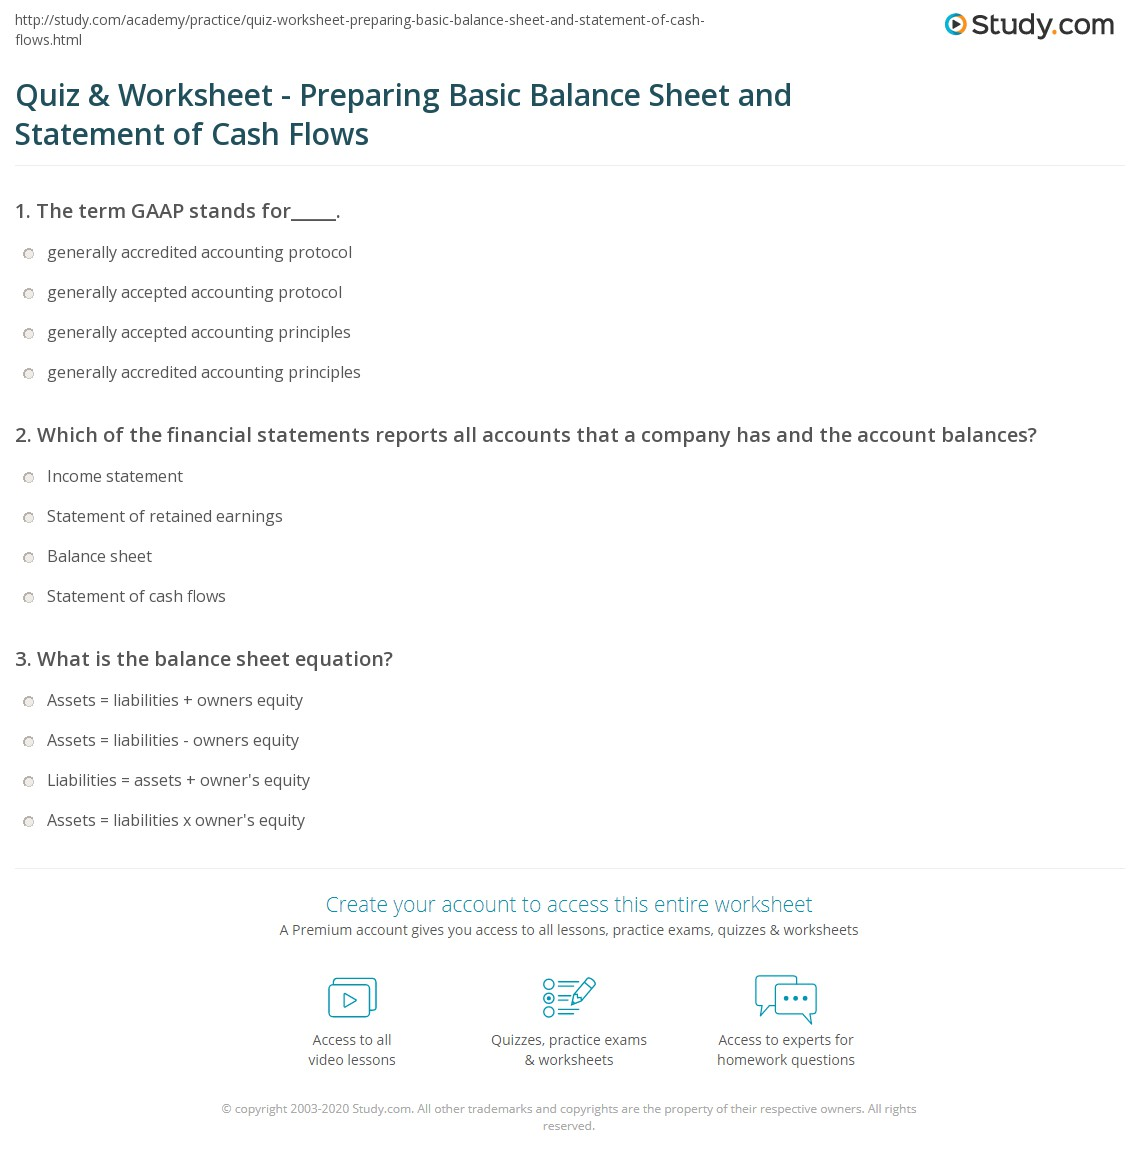 Worksheets Balance Sheet Worksheet quiz worksheet preparing basic balance sheet and statement of print how to prepare the cash flows worksheet